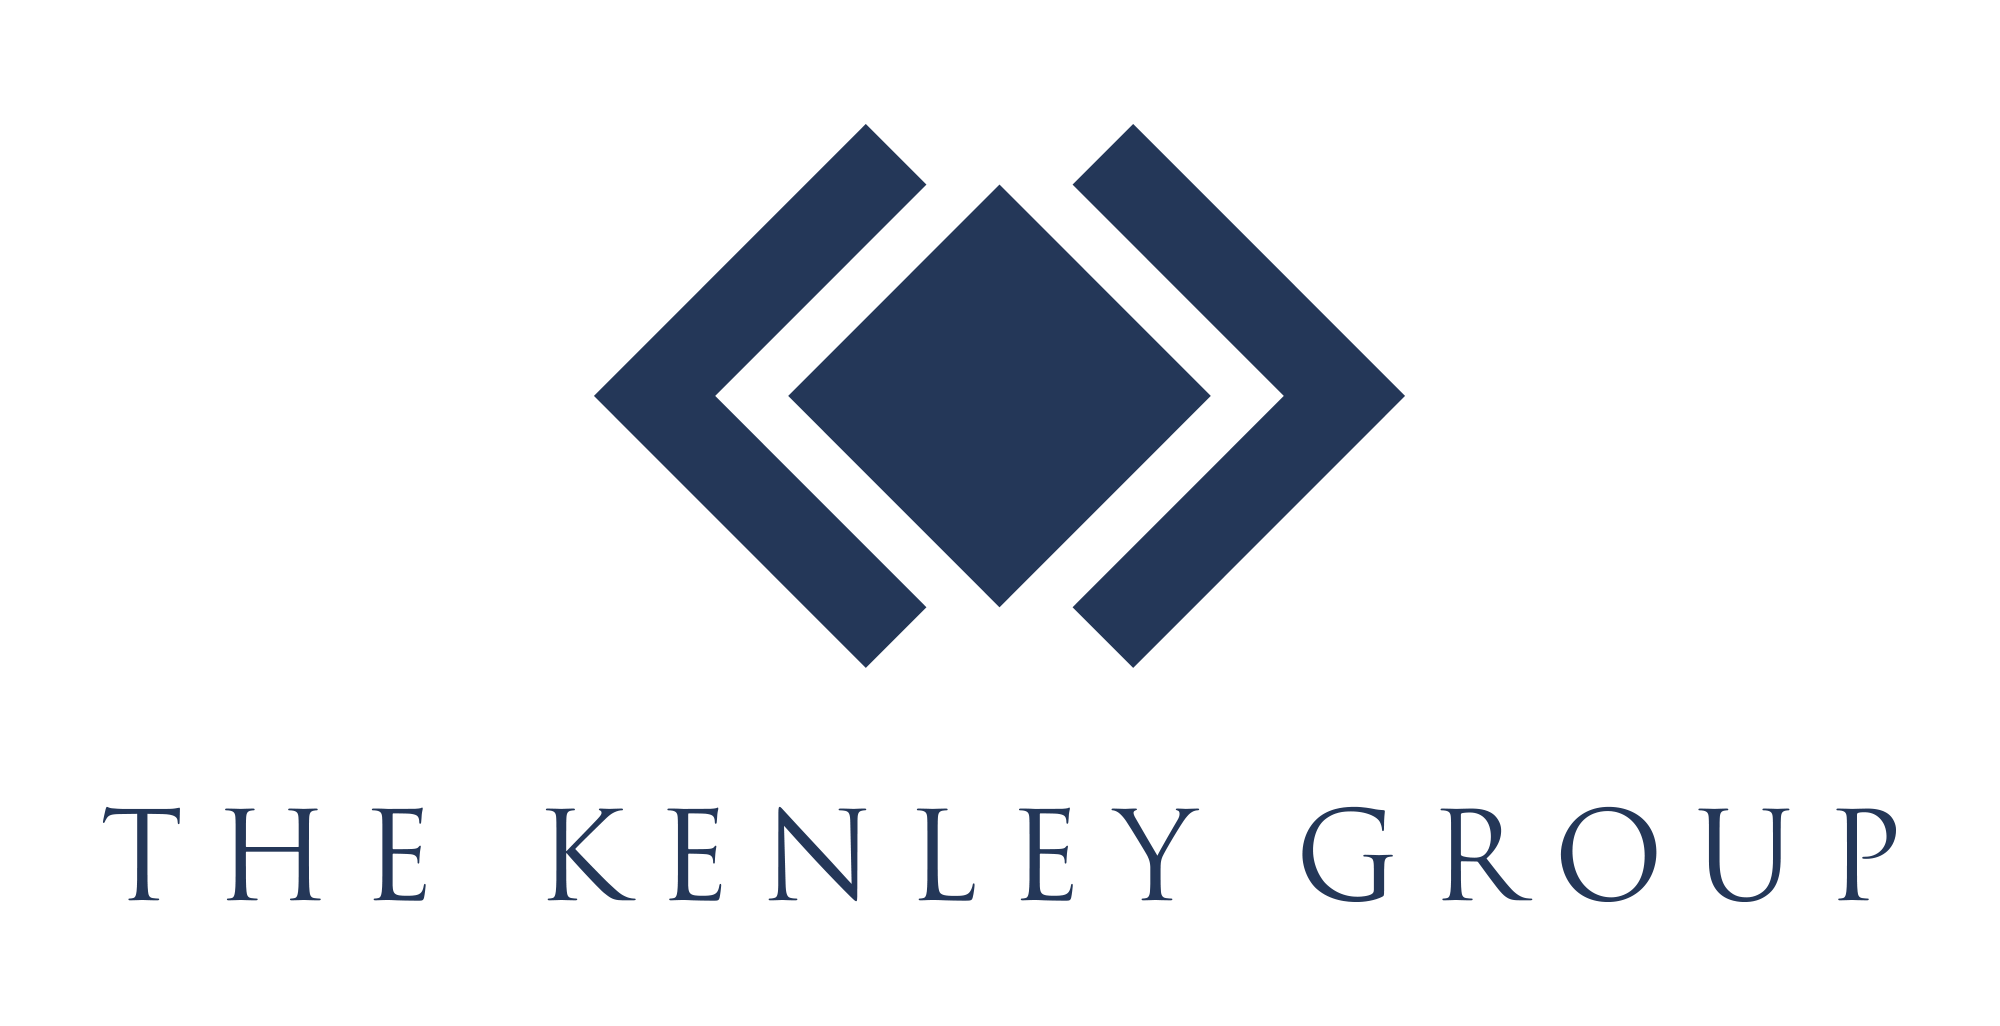 The Kenley Group